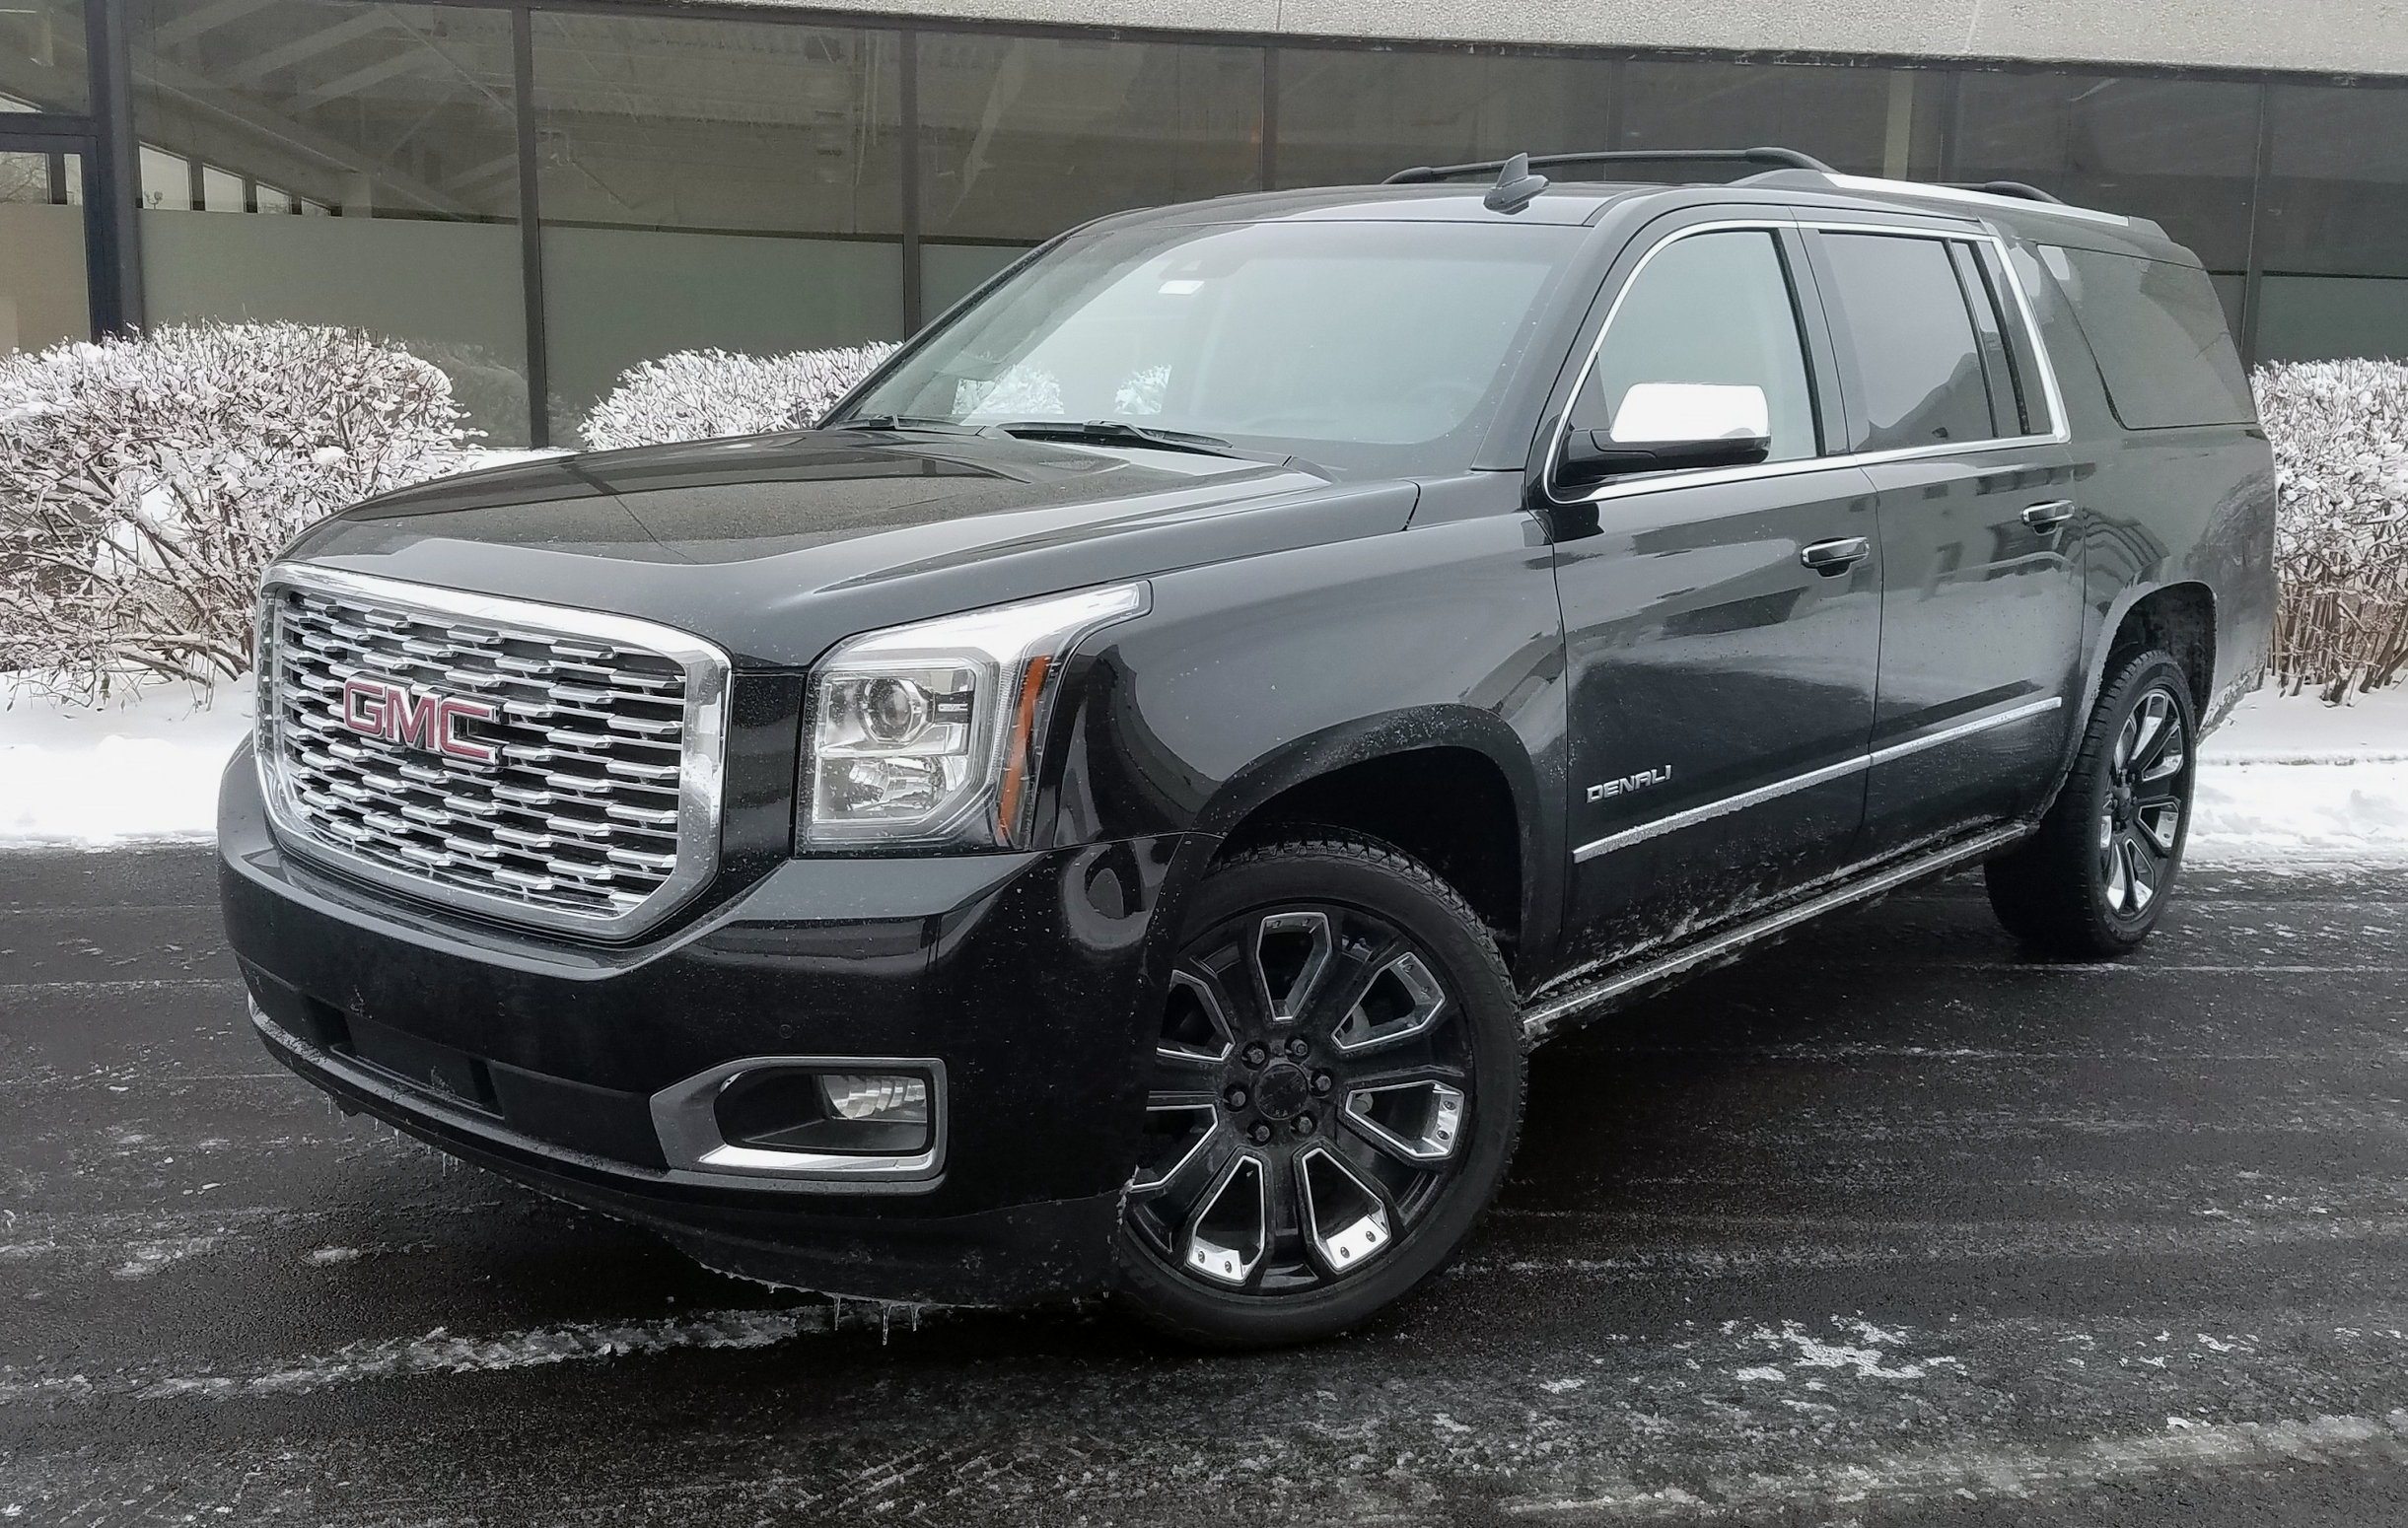 Used Yukon Denali >> Test Drive: 2019 GMC Yukon XL Denali | The Daily Drive | Consumer Guide® The Daily Drive ...